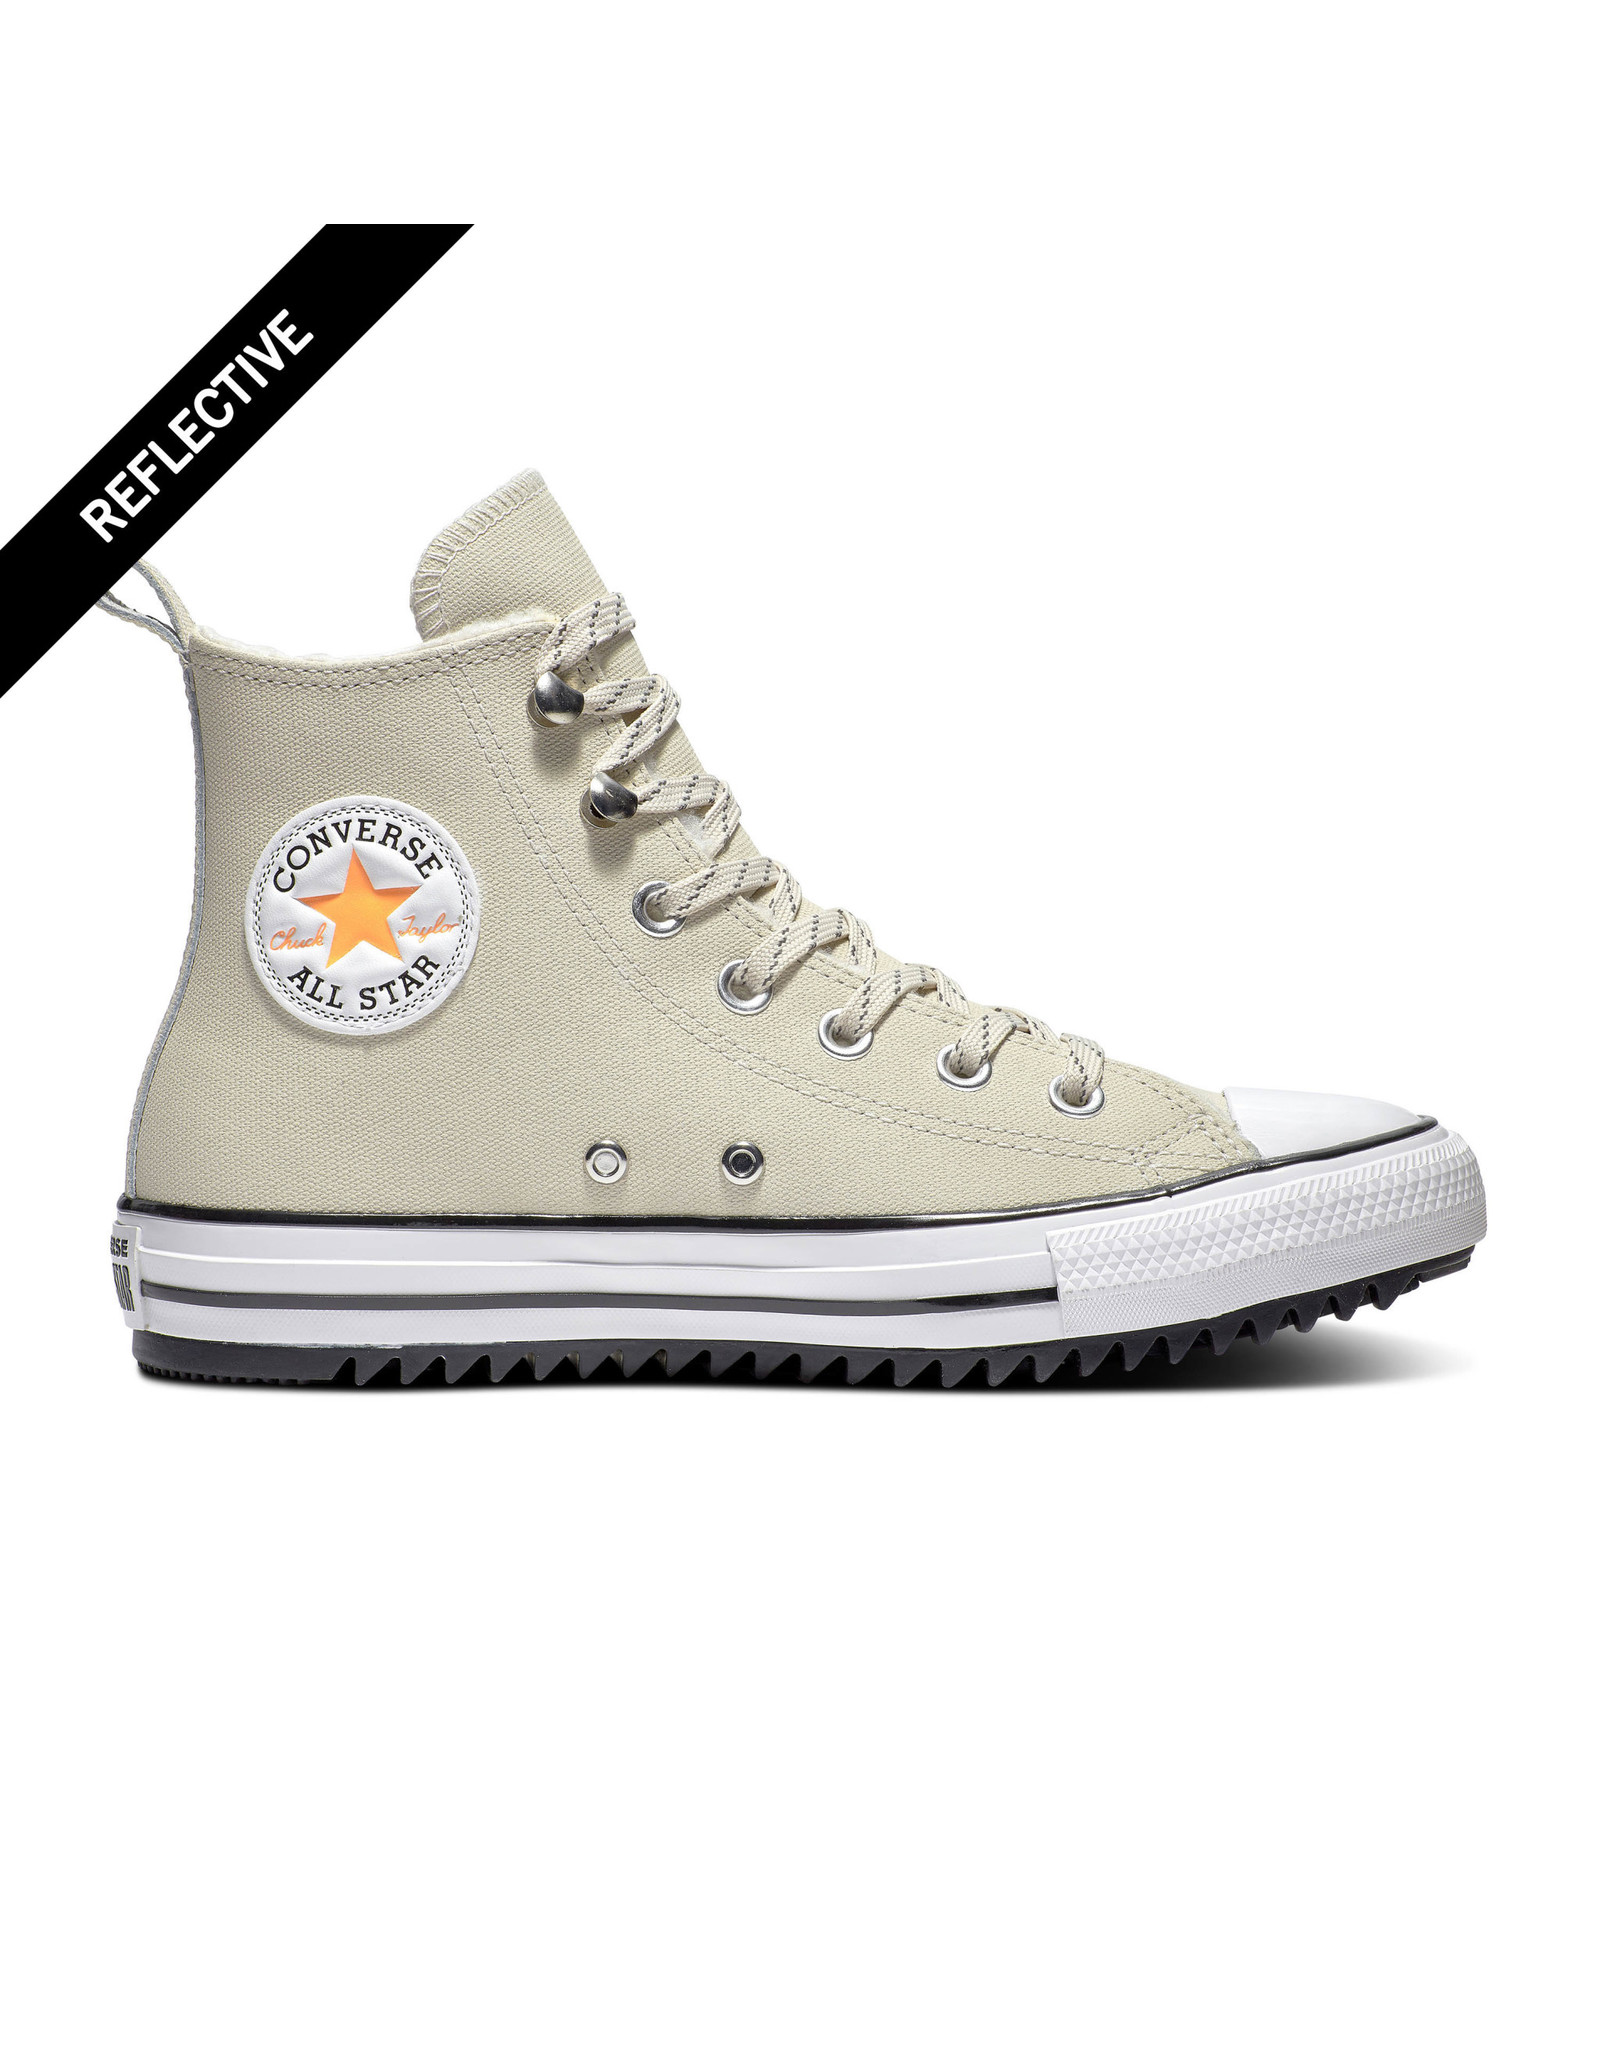 CONVERSE CHUCK TAYLOR ALL STAR HIKER LT OREWOOD BROWN/BLACK/WHITE C20WOR-169460C